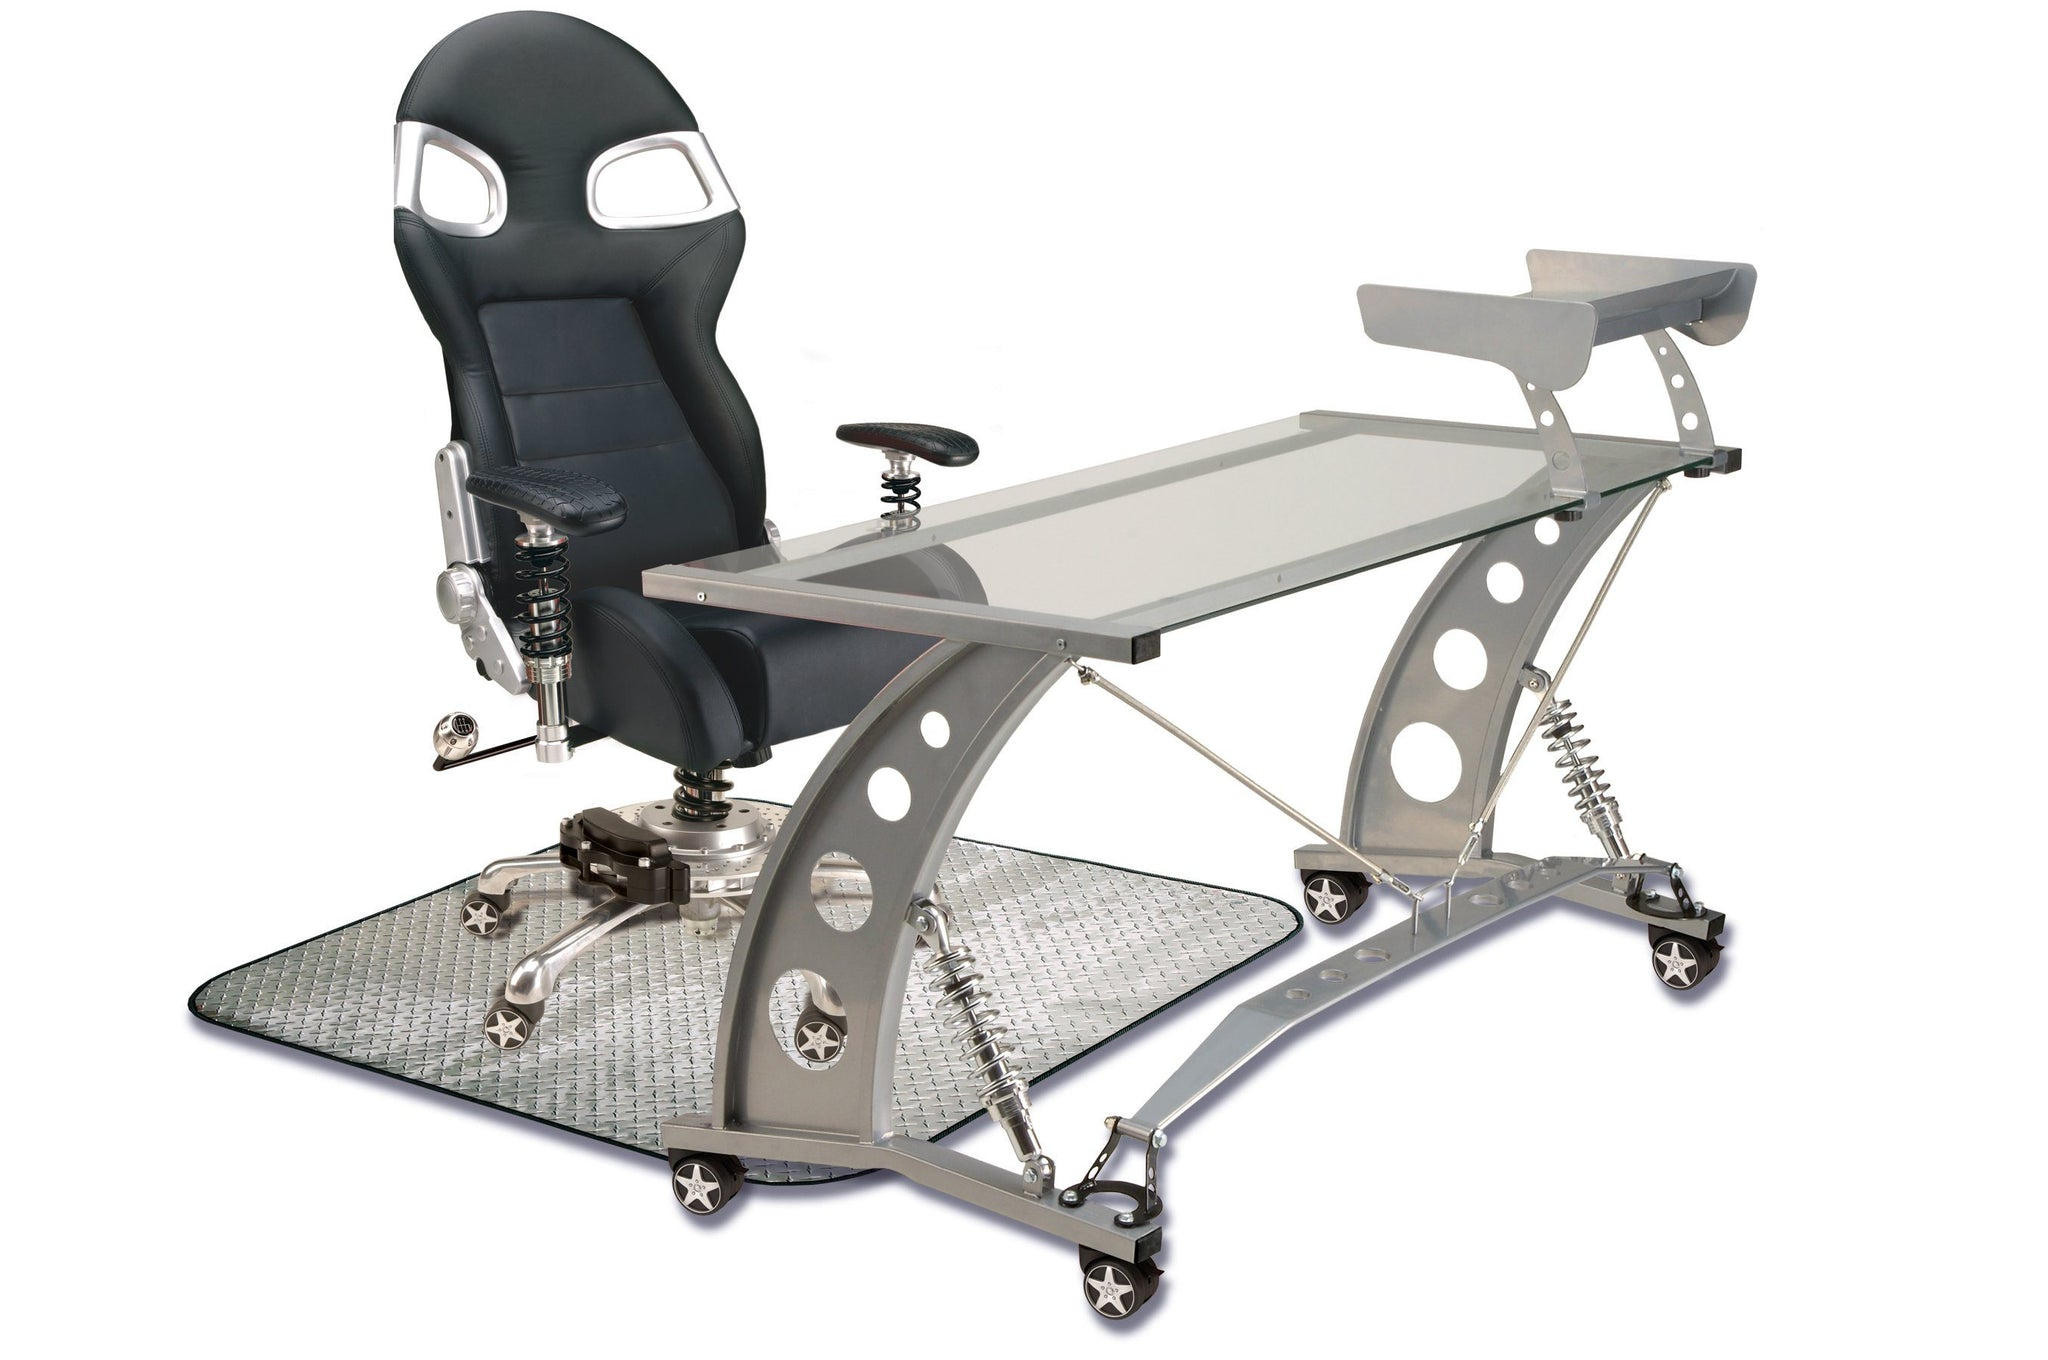 Pitstop XLE office Chair